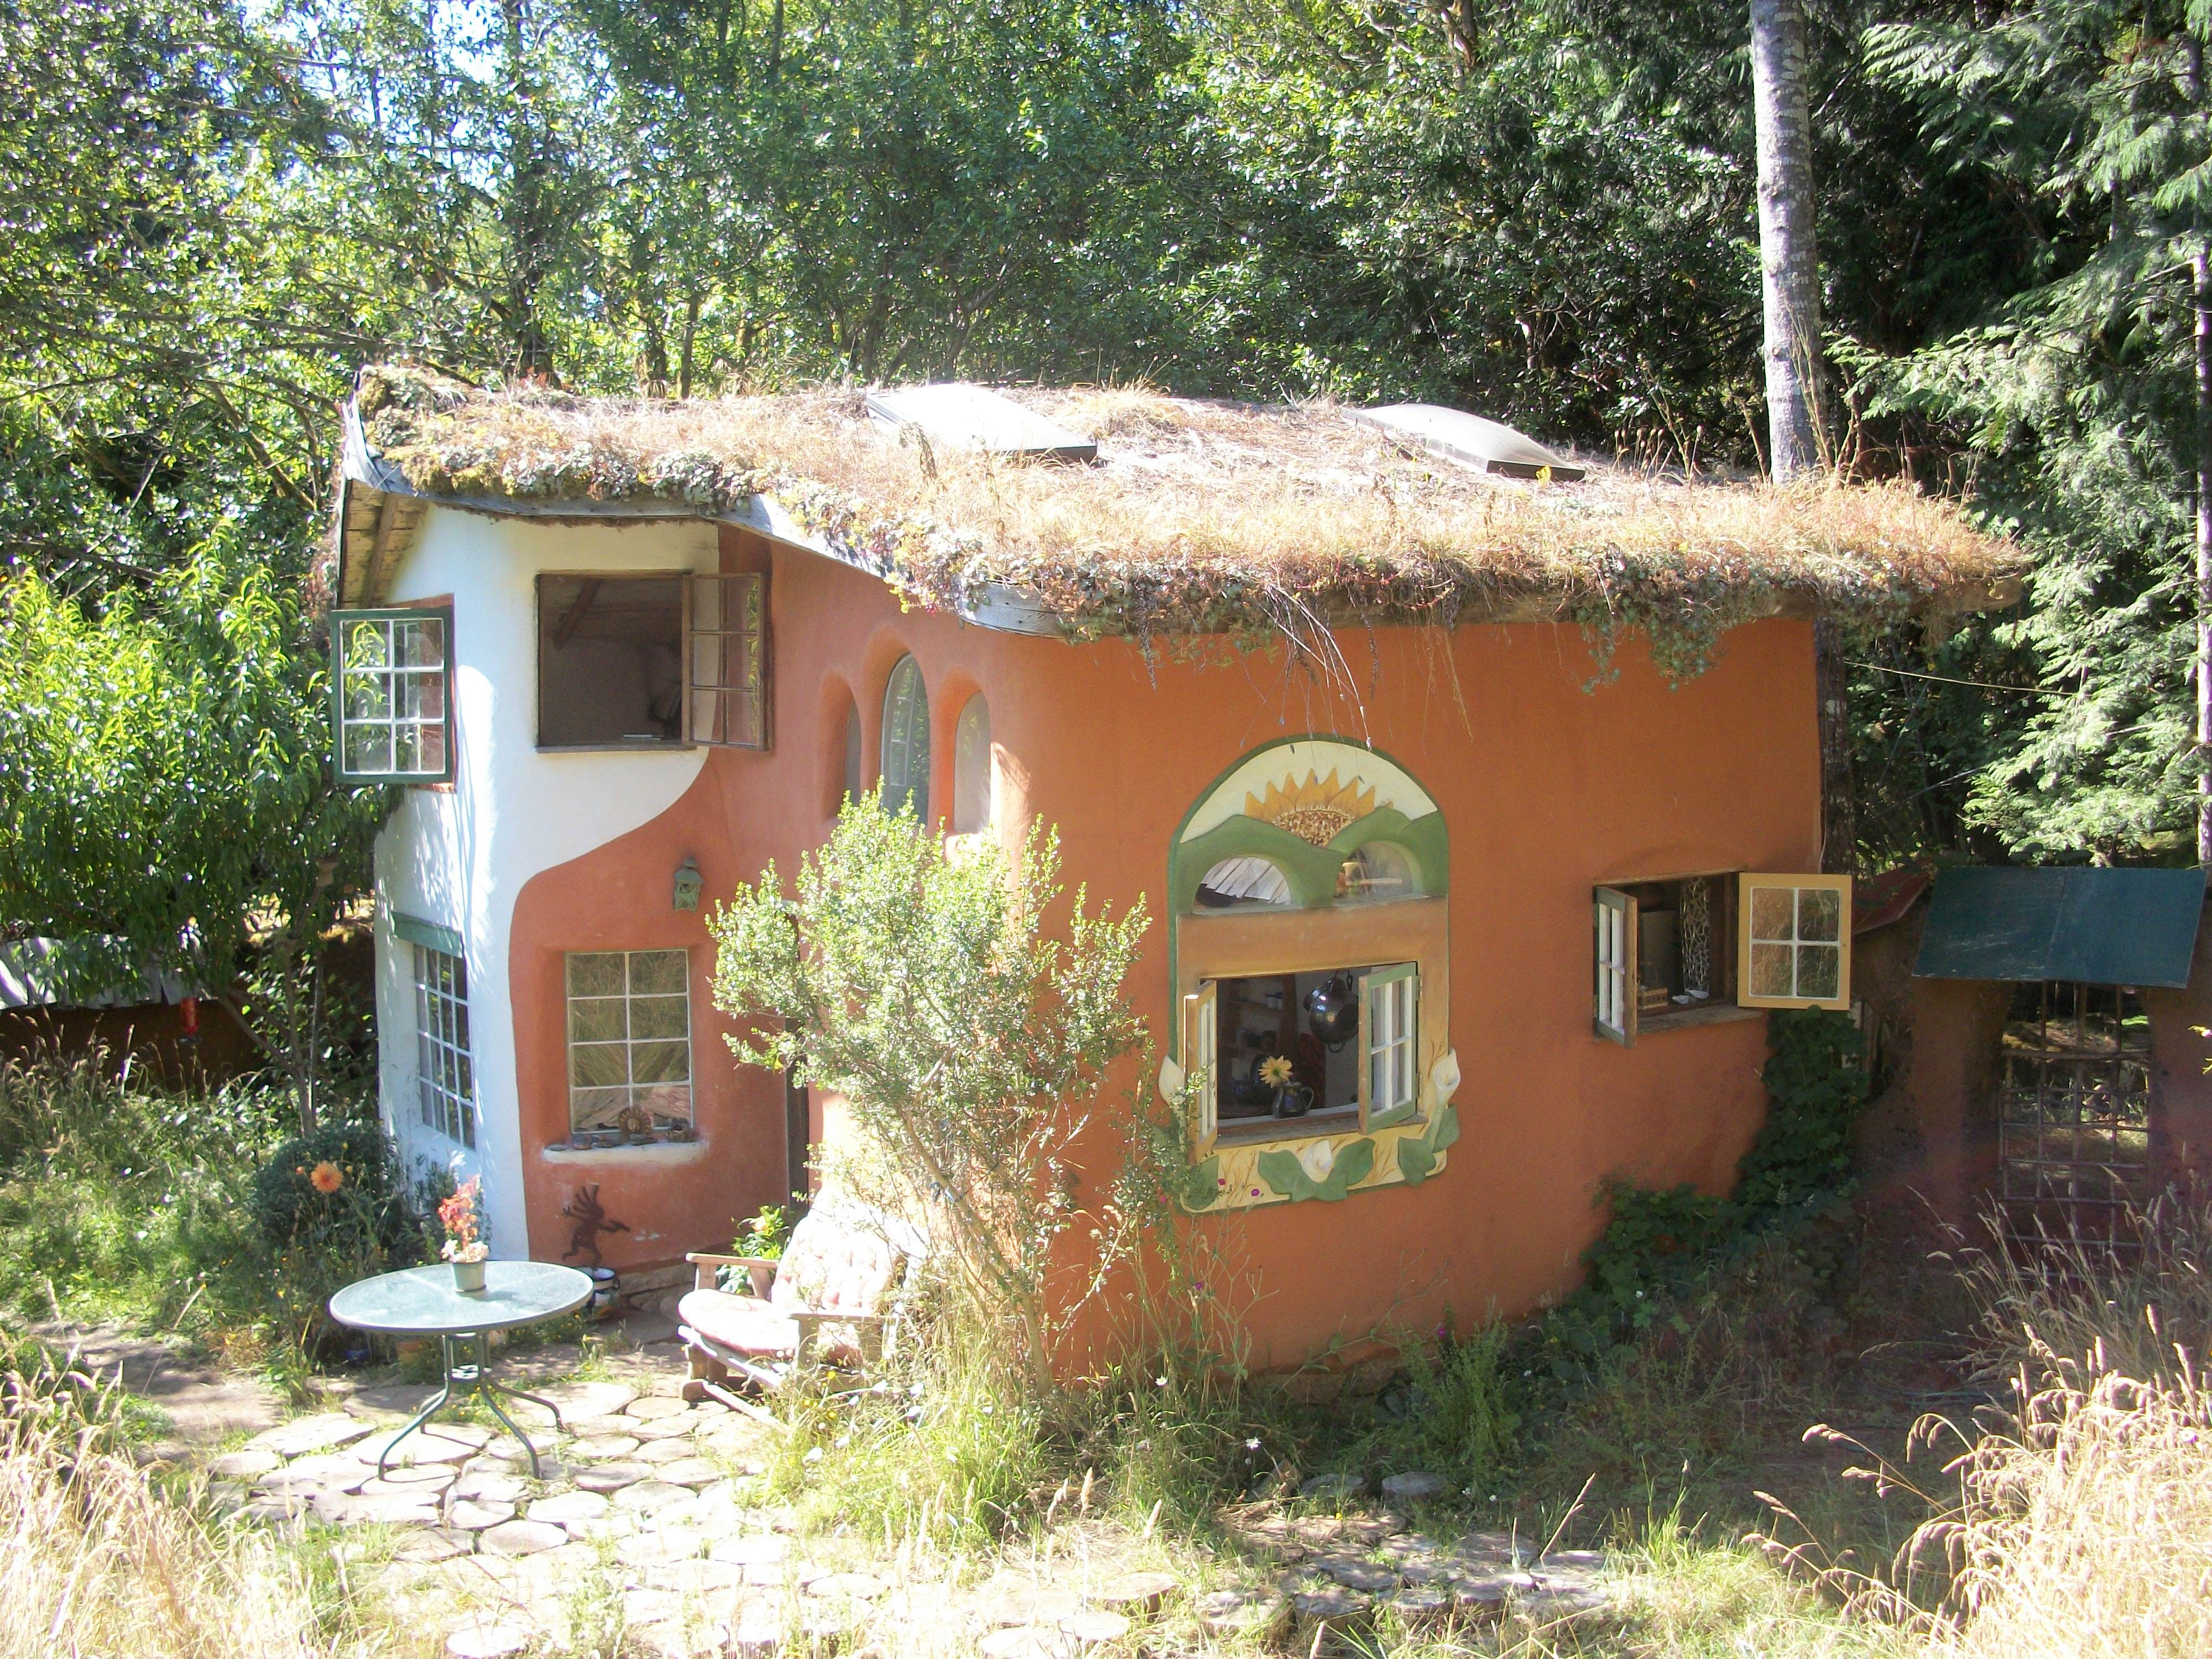 cob houses in Mississippi | Building Cob Homes in Oregon - Travels ...